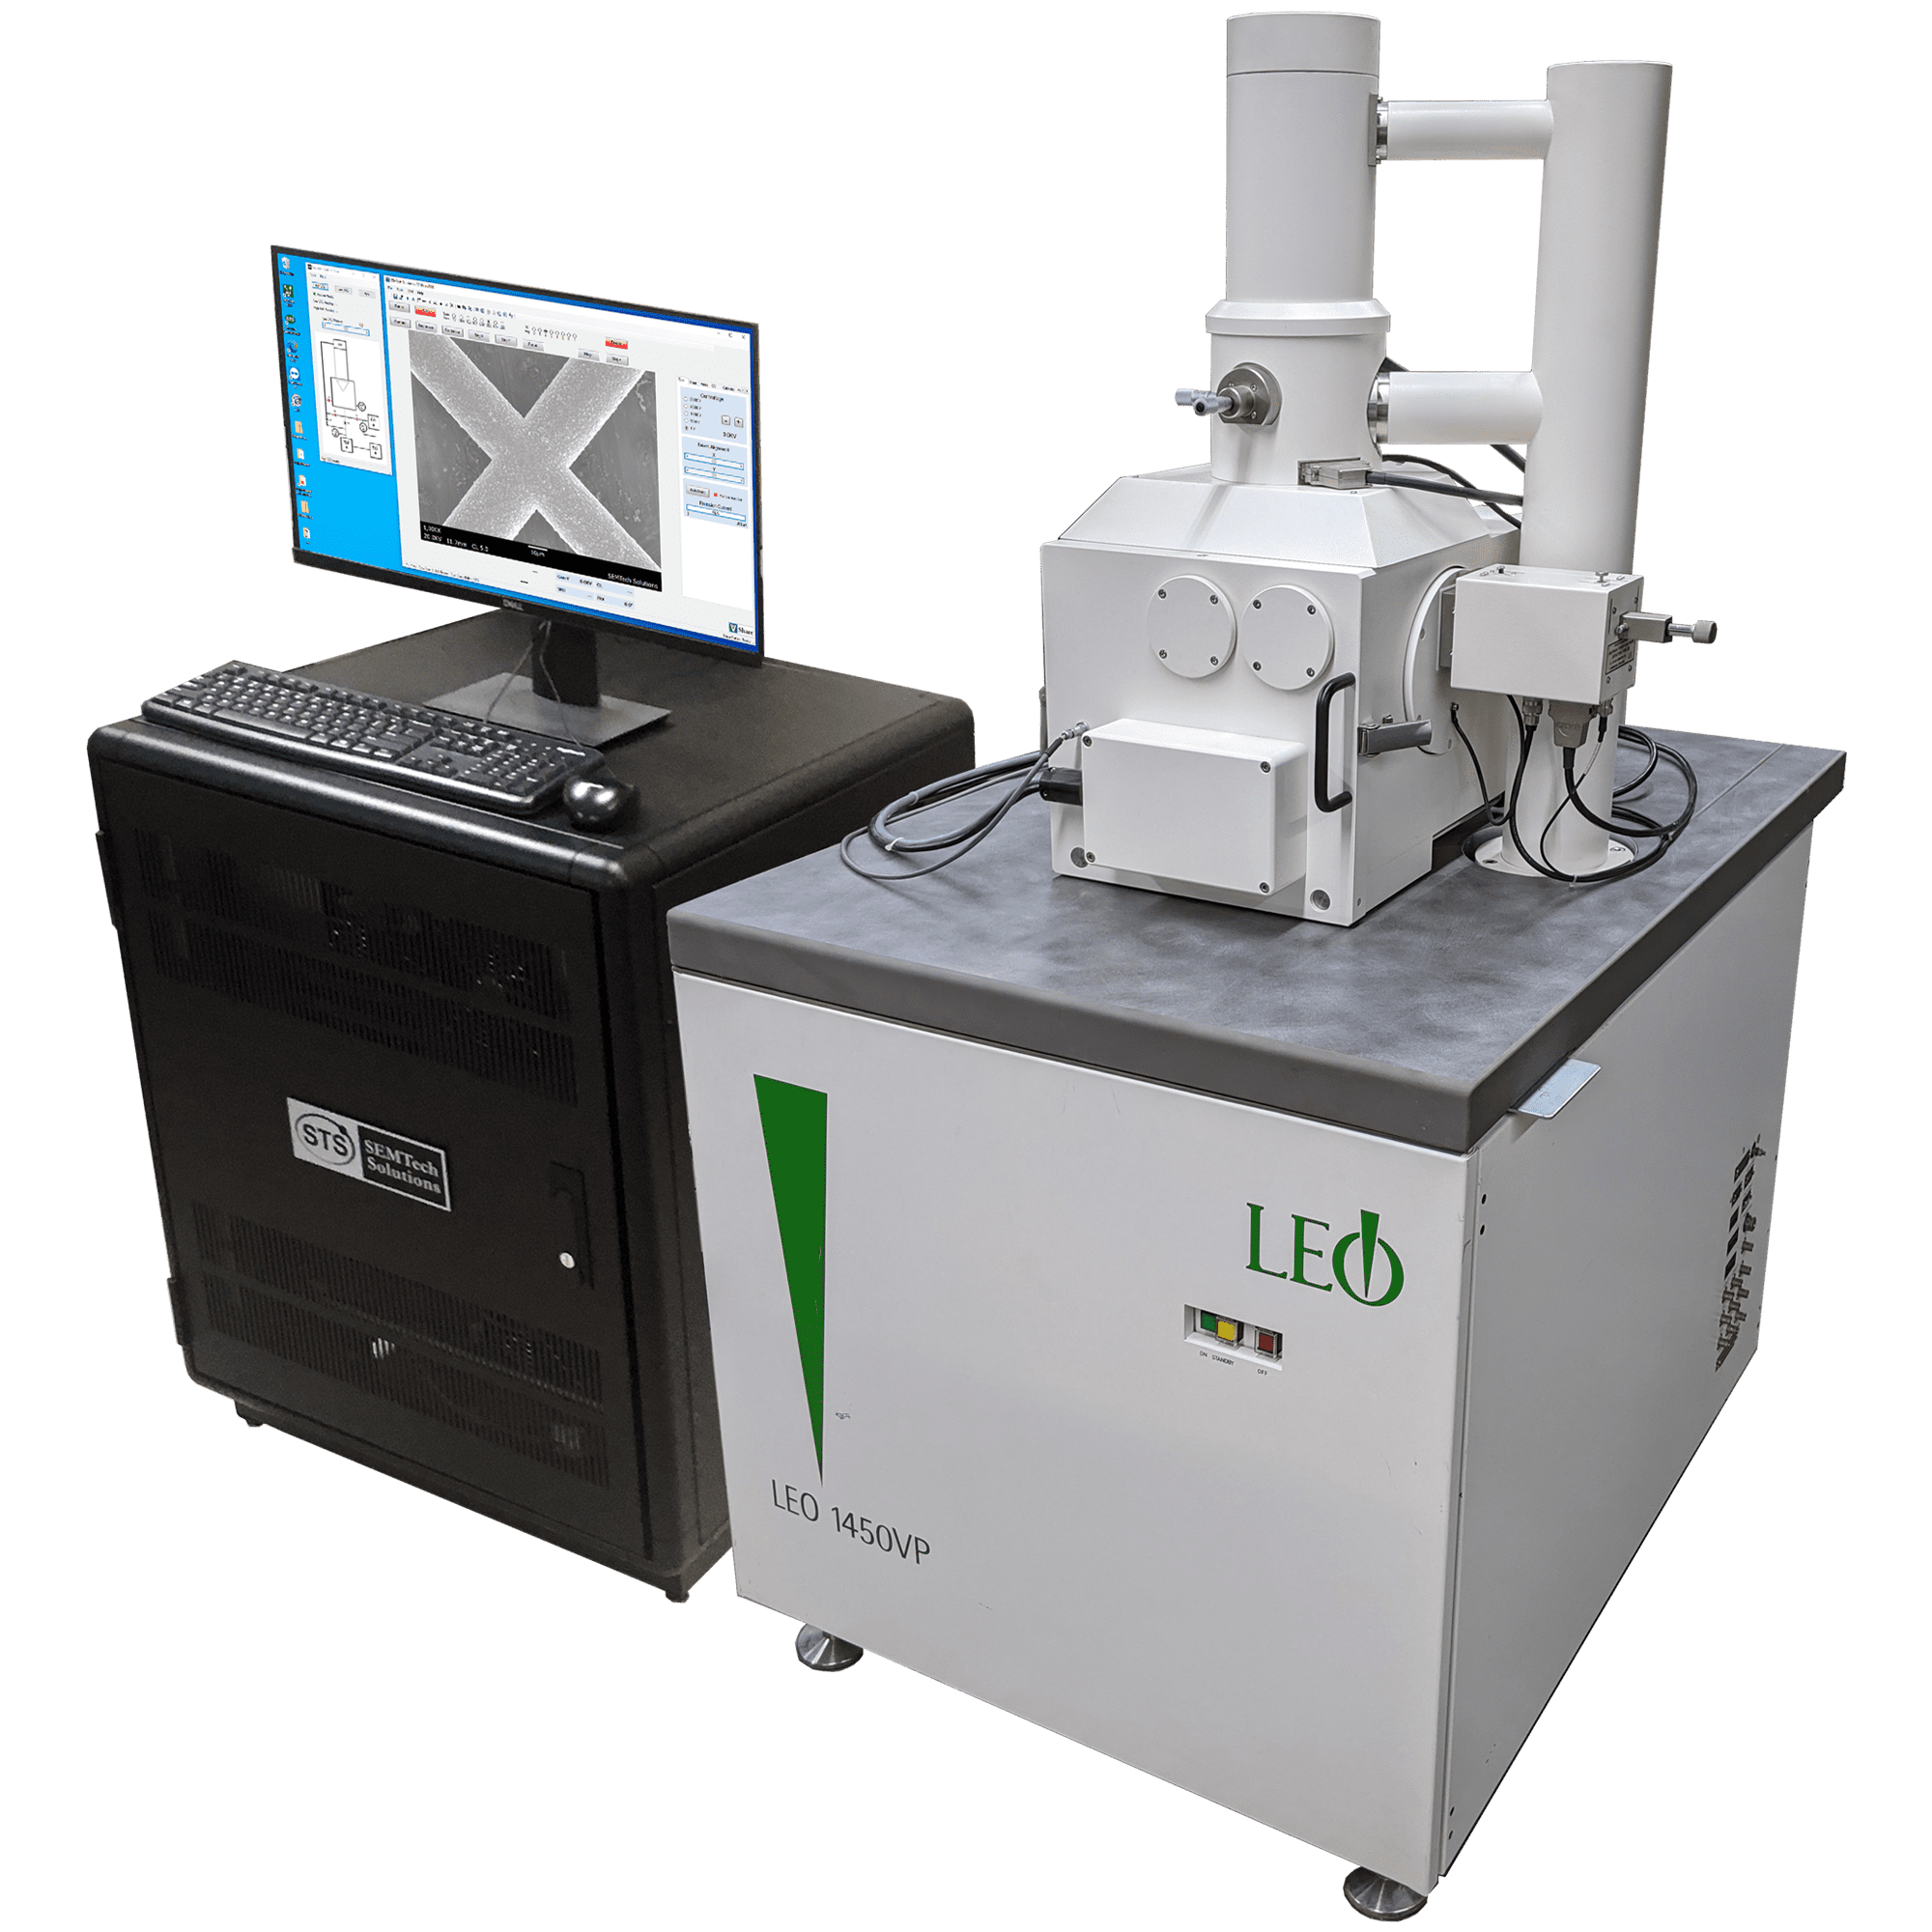 Win10 LEO 1450VP Refurbished SEM - Powered by SEMView8000